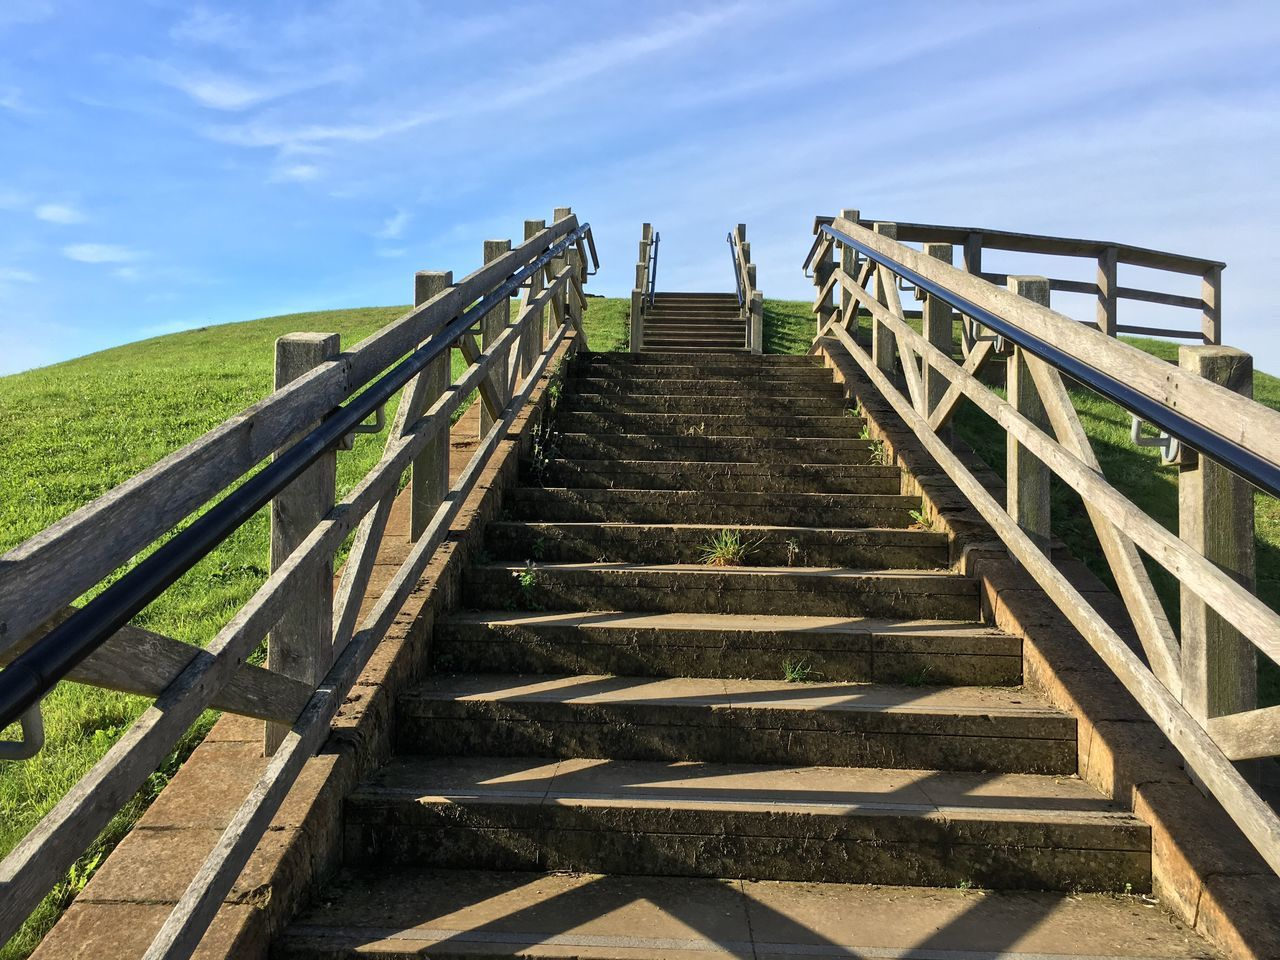 StairwaytoHeaven Steps Going Up Towcester Steps Railing Steps And Staircases Staircase The Way Forward Low Angle View Sky Cloud Outdoors Day Scenics Tranquil Scene Diminishing Perspective Tranquility Bannister